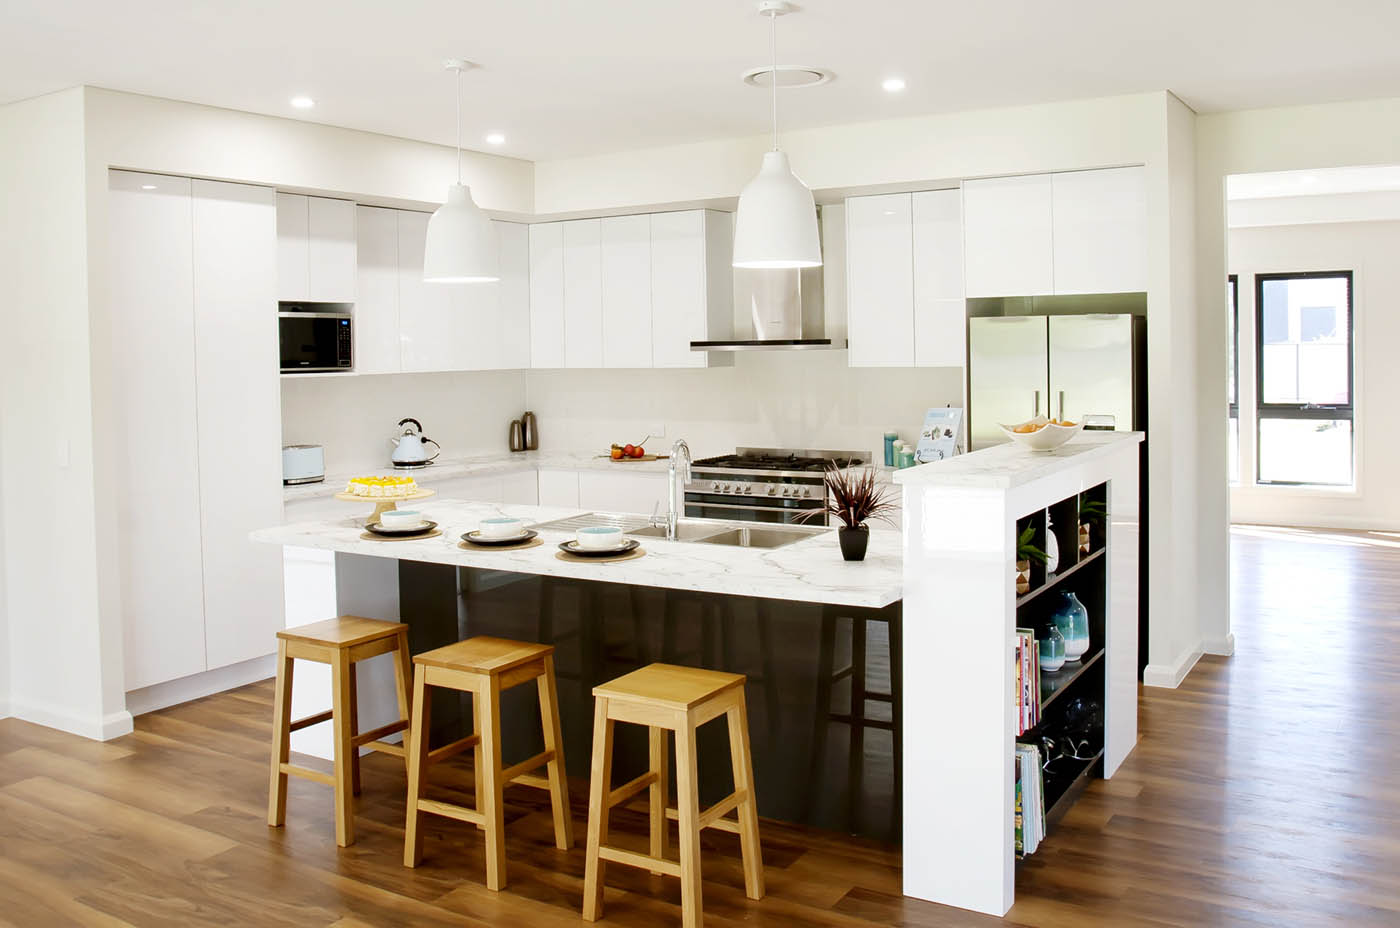 Contemporary white kitchen with island bench